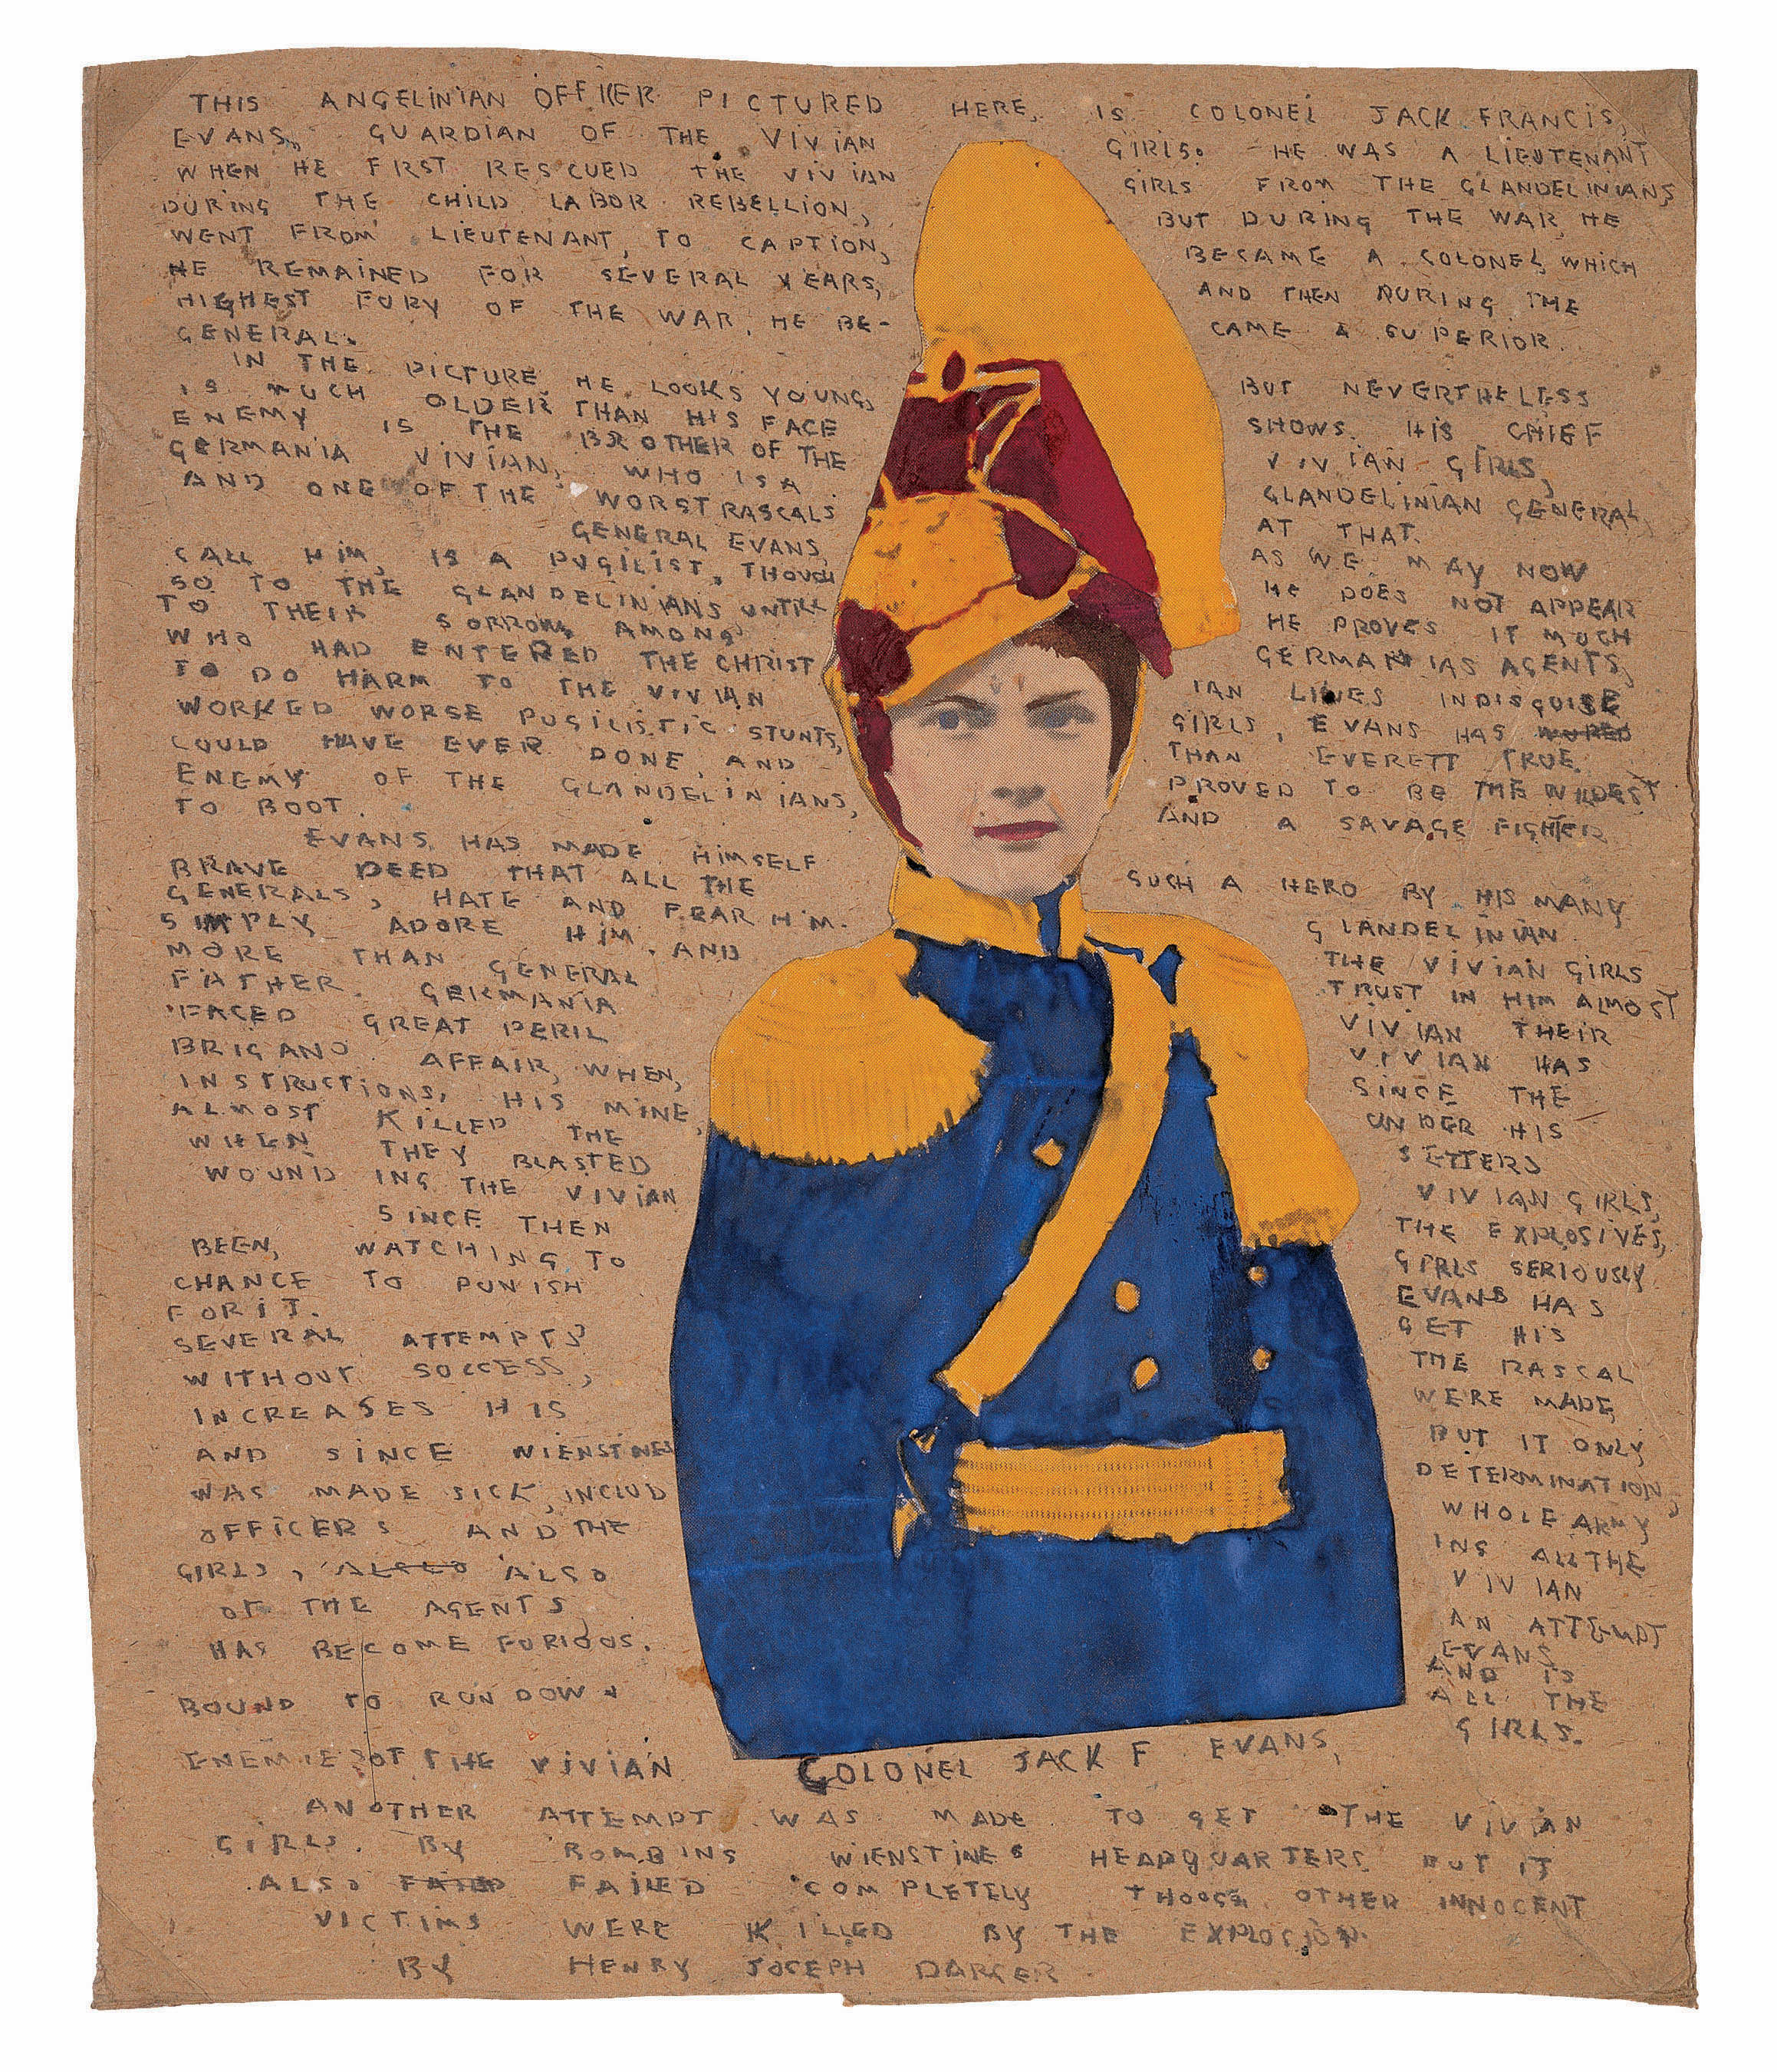 Henry Darger (American, 1892-1973).  COLONEL JACK F EVANS , mid-twentieth century. Watercolor, pencil, ink, and collage on board, 13 ¾ x 11 ½ in. Collection American Folk Art Museum, New York, museum purchase,2002.22.5. © 2017 Kiyoko Lerner / Artists Rights Society (ARS),New York. Photo credit: Gavin Ashworth, © American Folk Art Museum/Art Resource, NY.